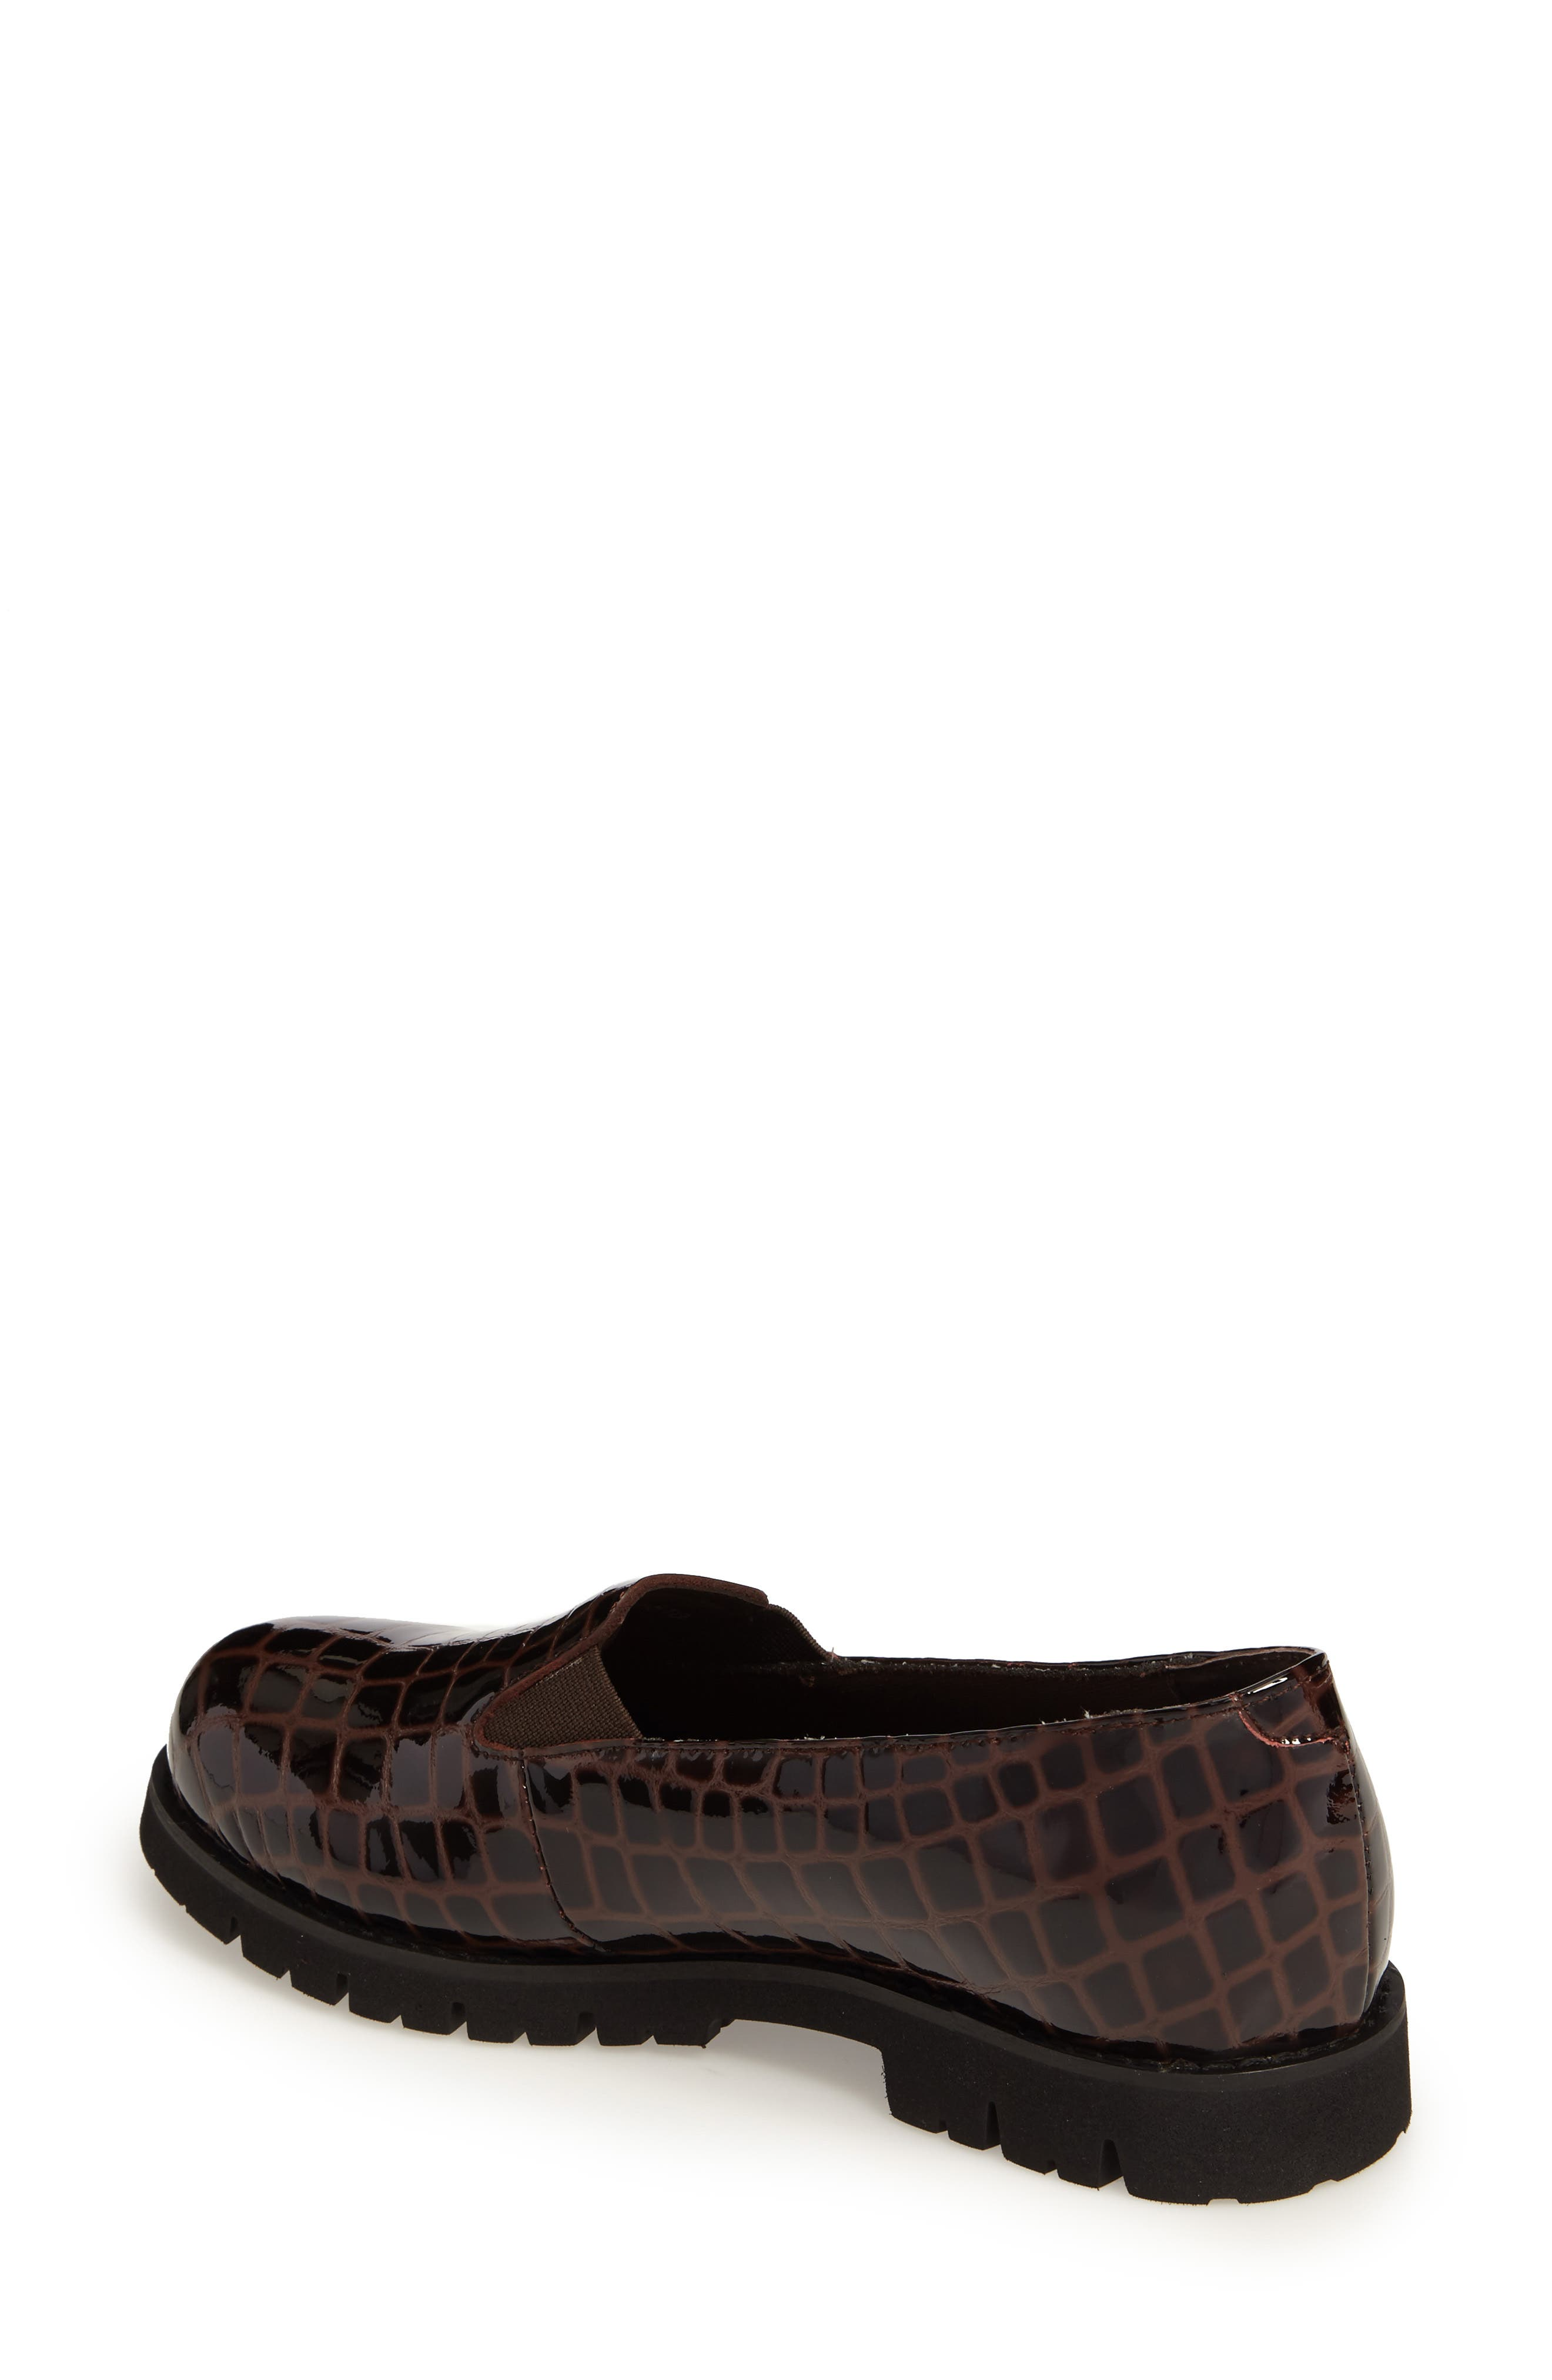 Pearl Loafer,                             Alternate thumbnail 2, color,                             Brown Patent Leather